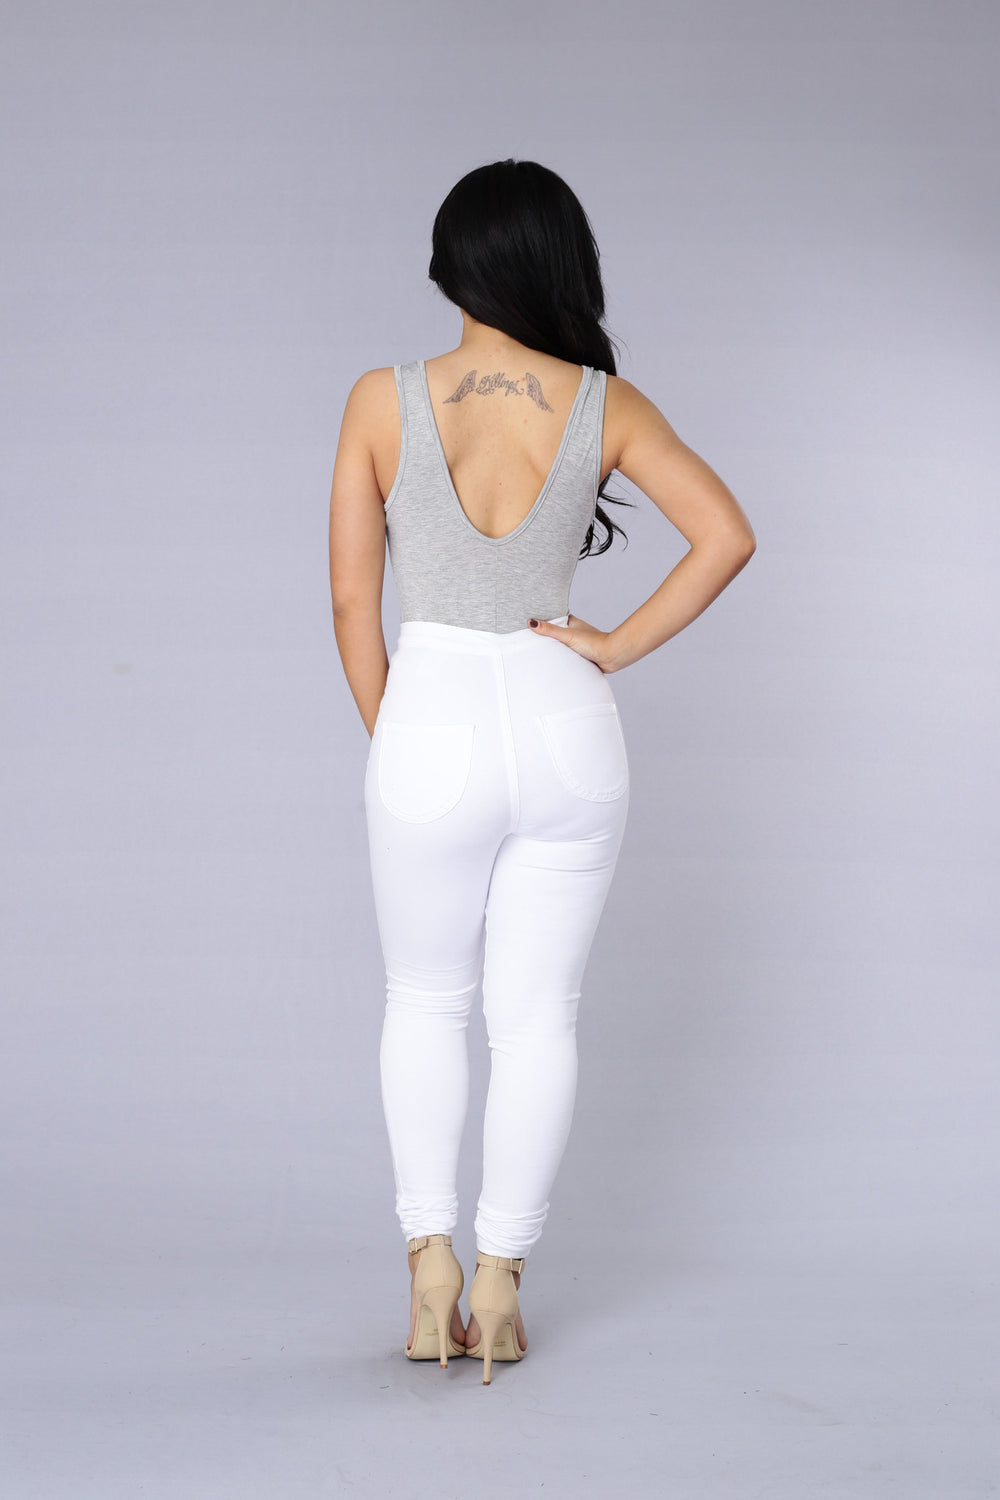 Antidote Bodysuit - Heather Grey